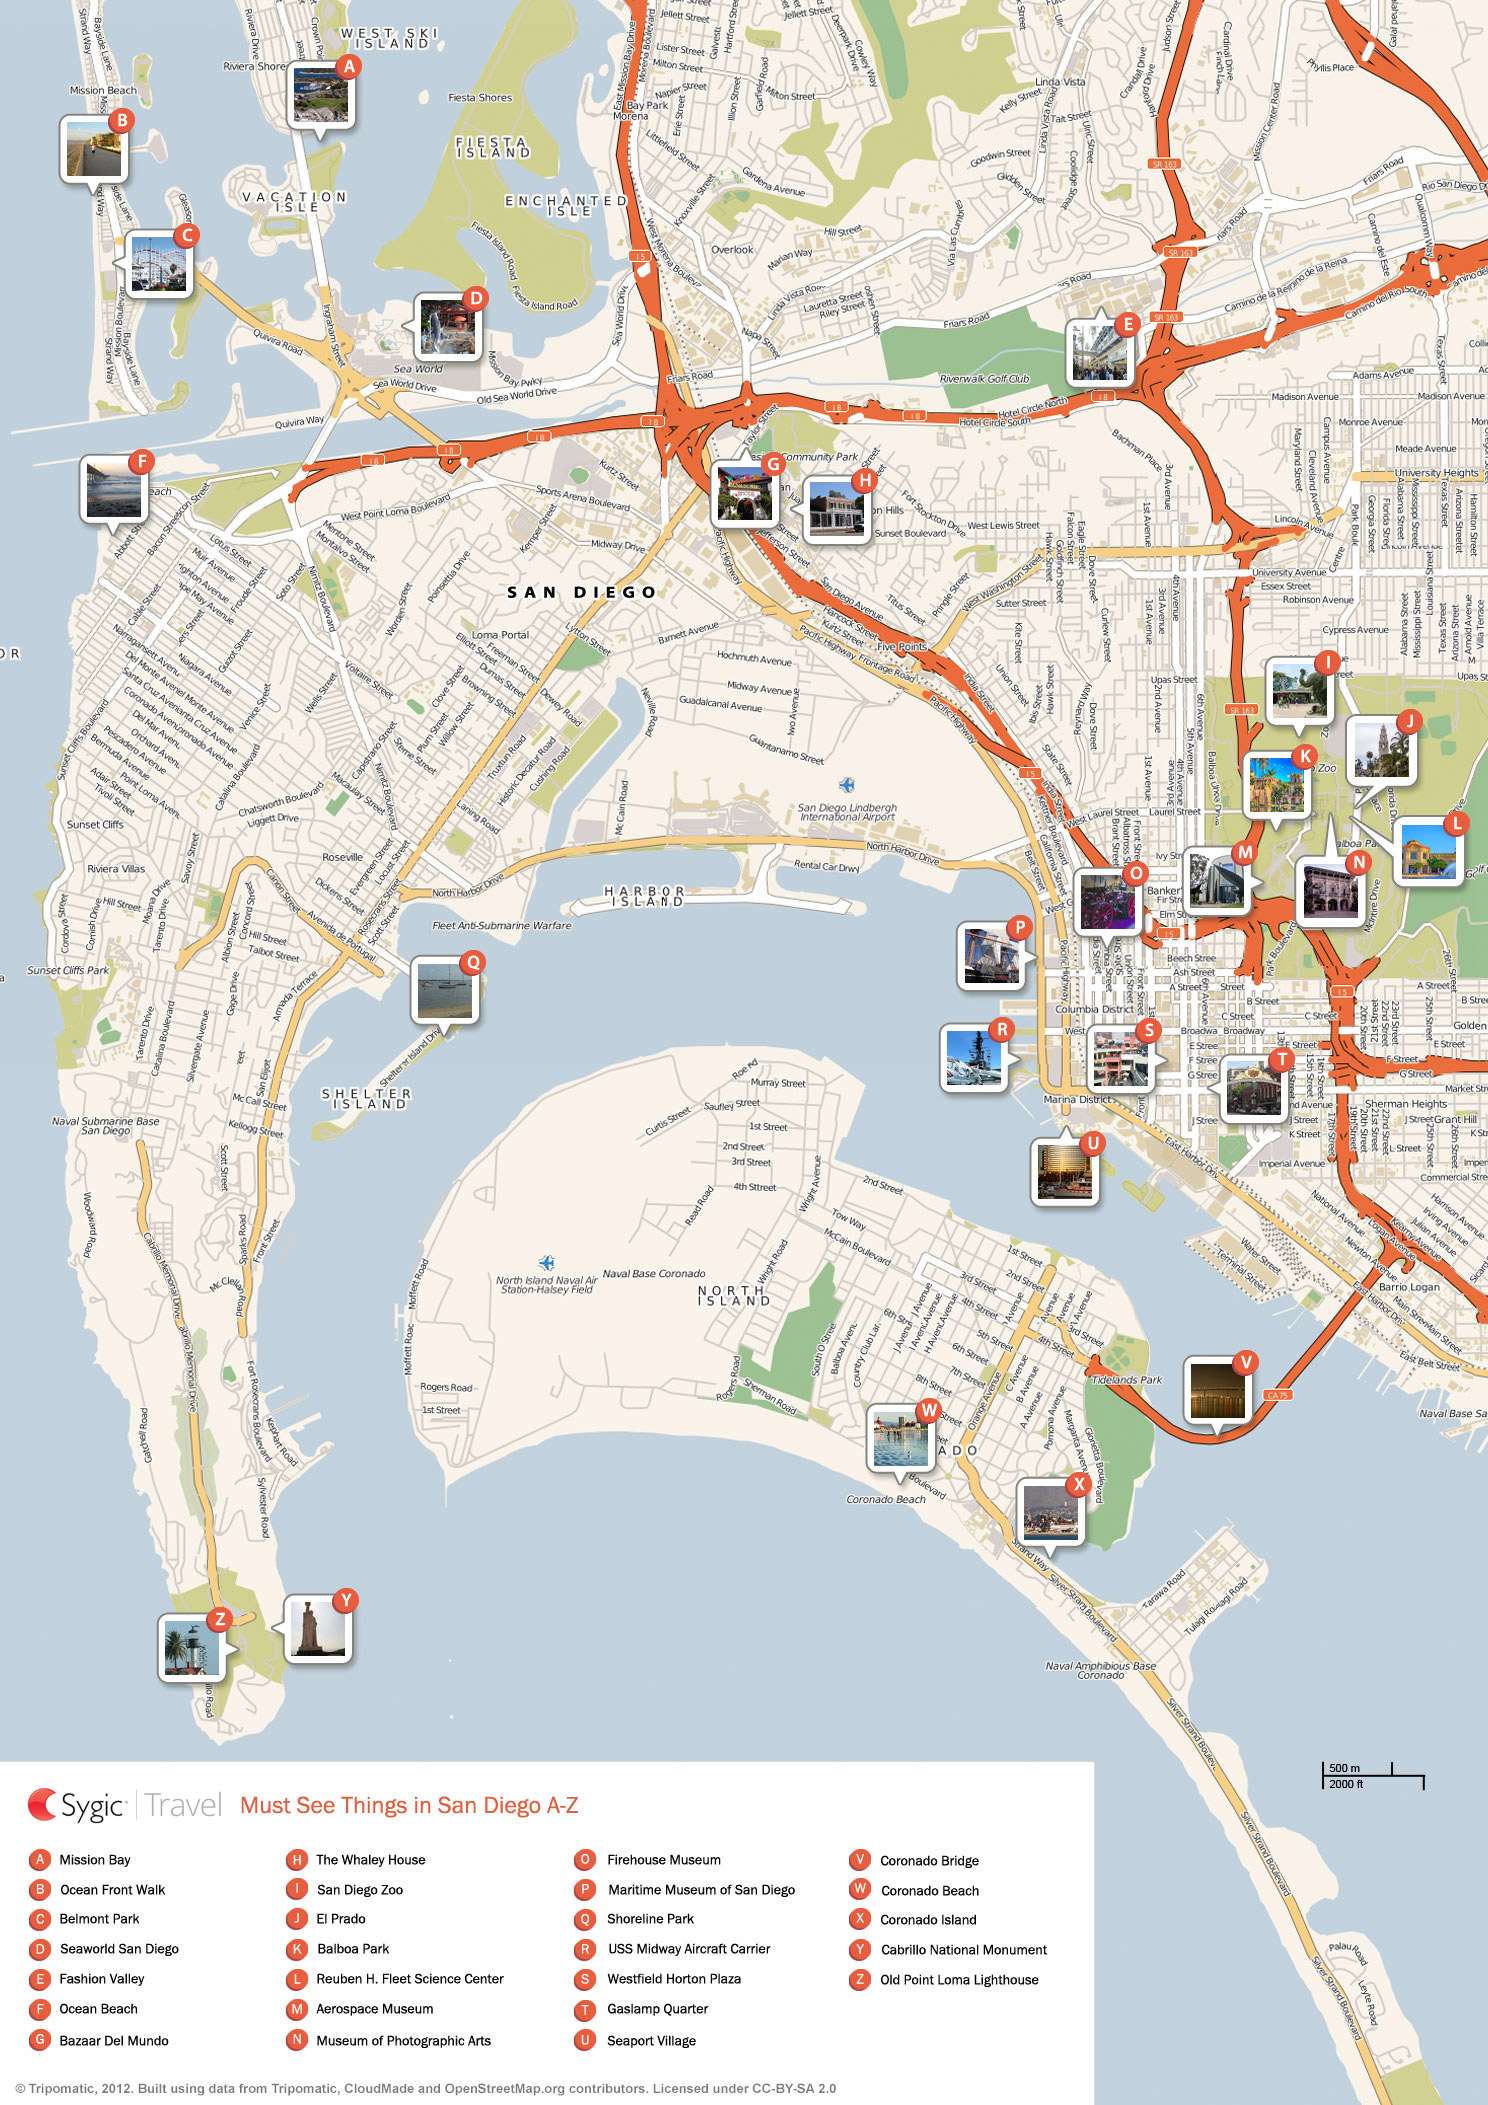 San Diego Printable Tourist Map – Printable Tourist Map Of London Attractions